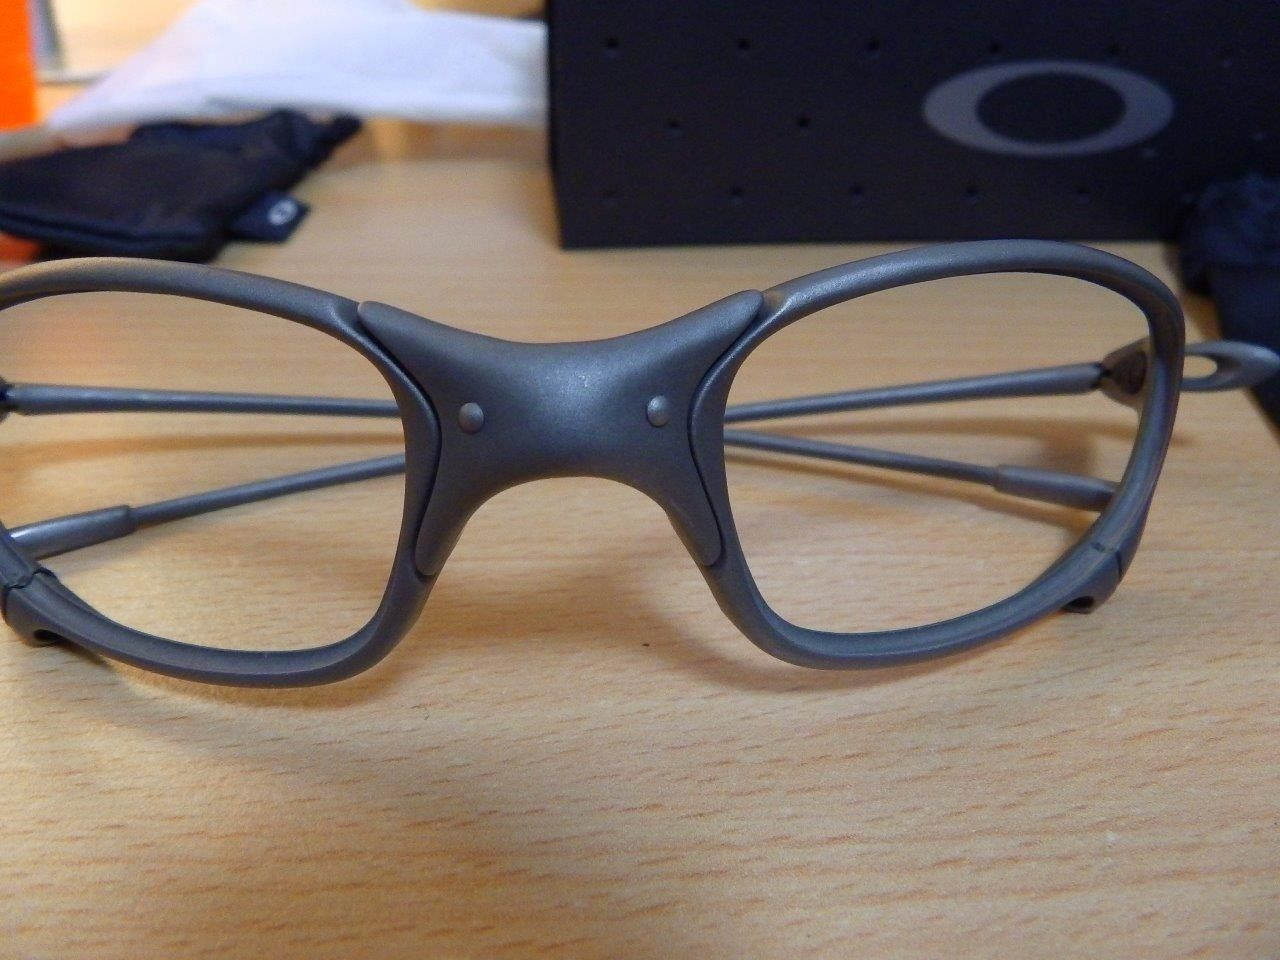 What Juliet frame finish is this? - IMGA0637.JPG